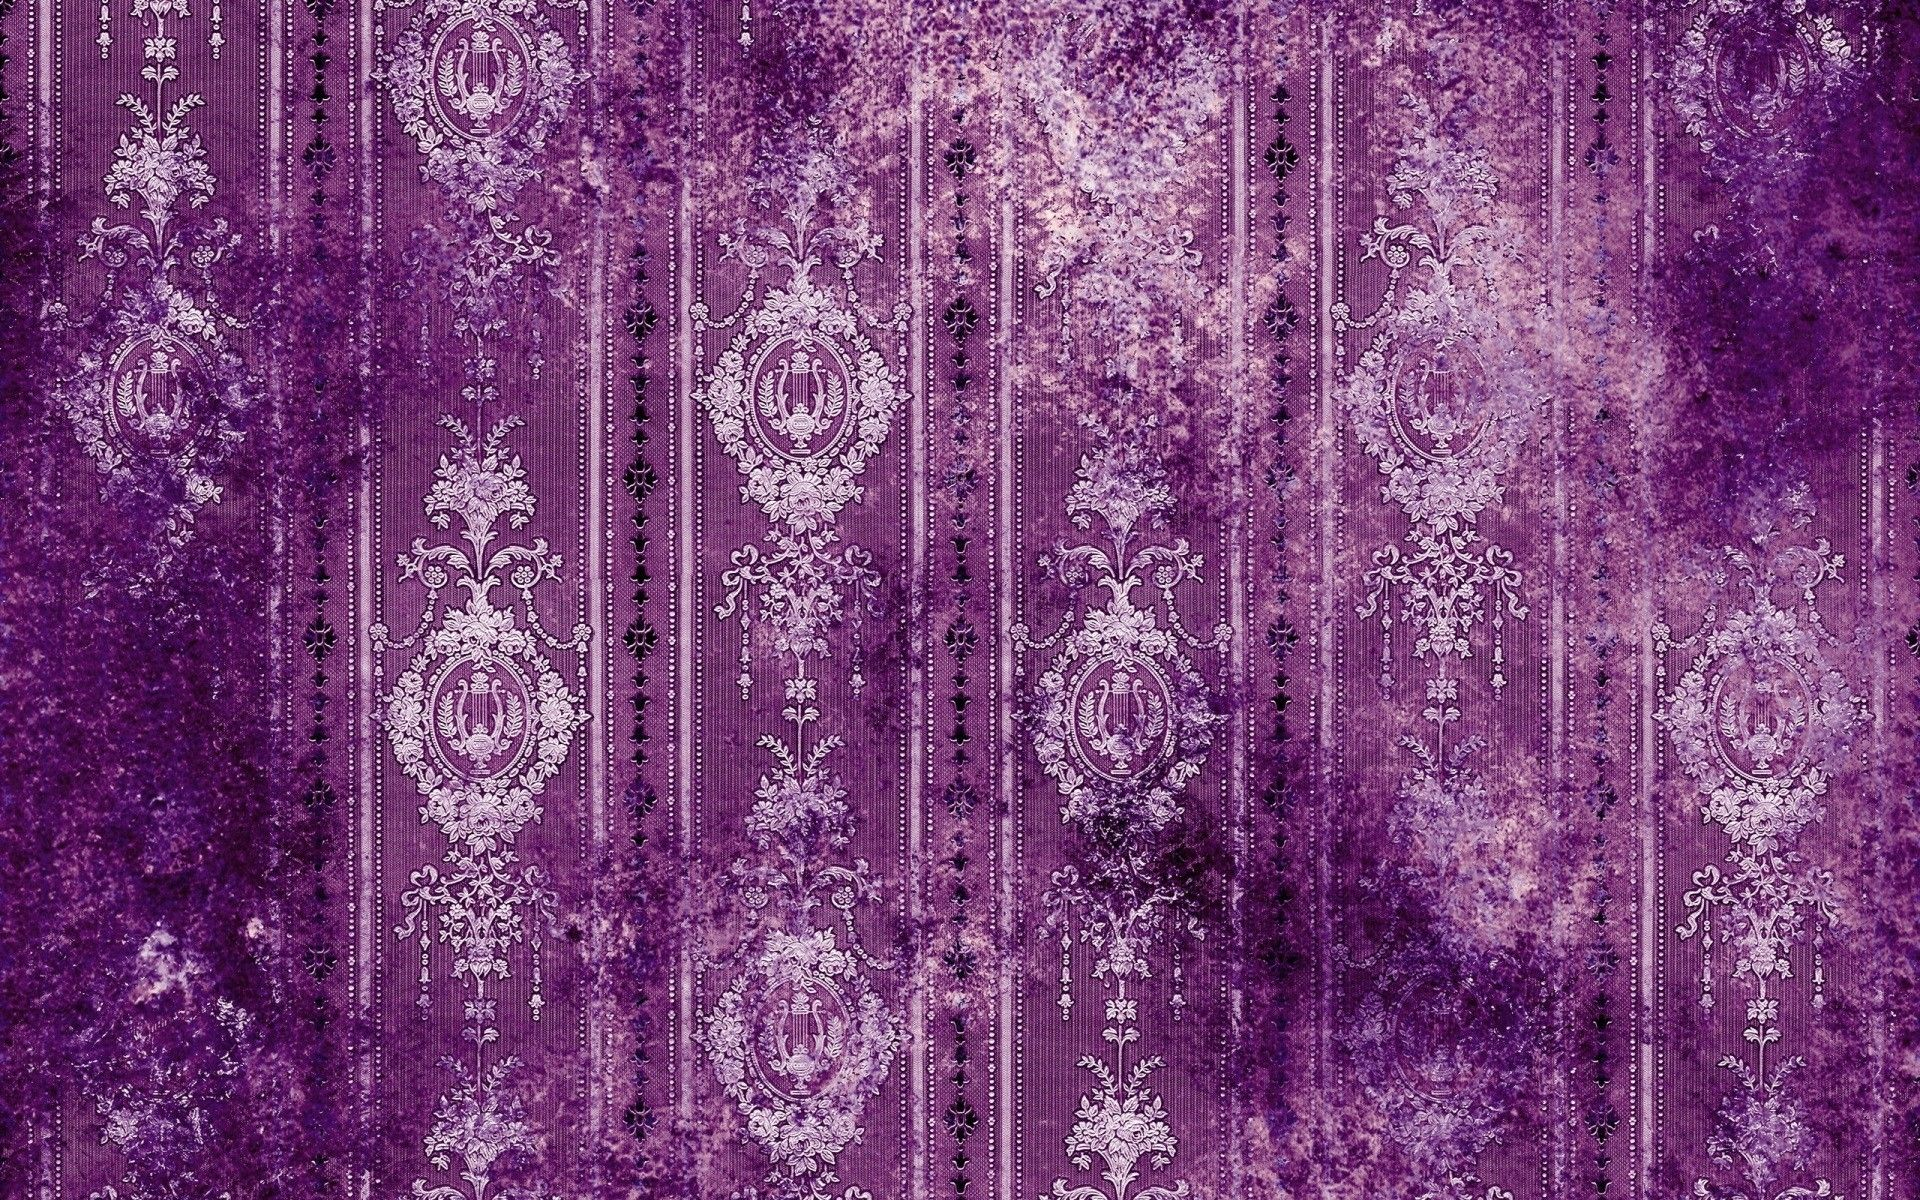 Abstract vintage old purple patterns artwork 1920x1200 hd for Purple wallpaper for walls